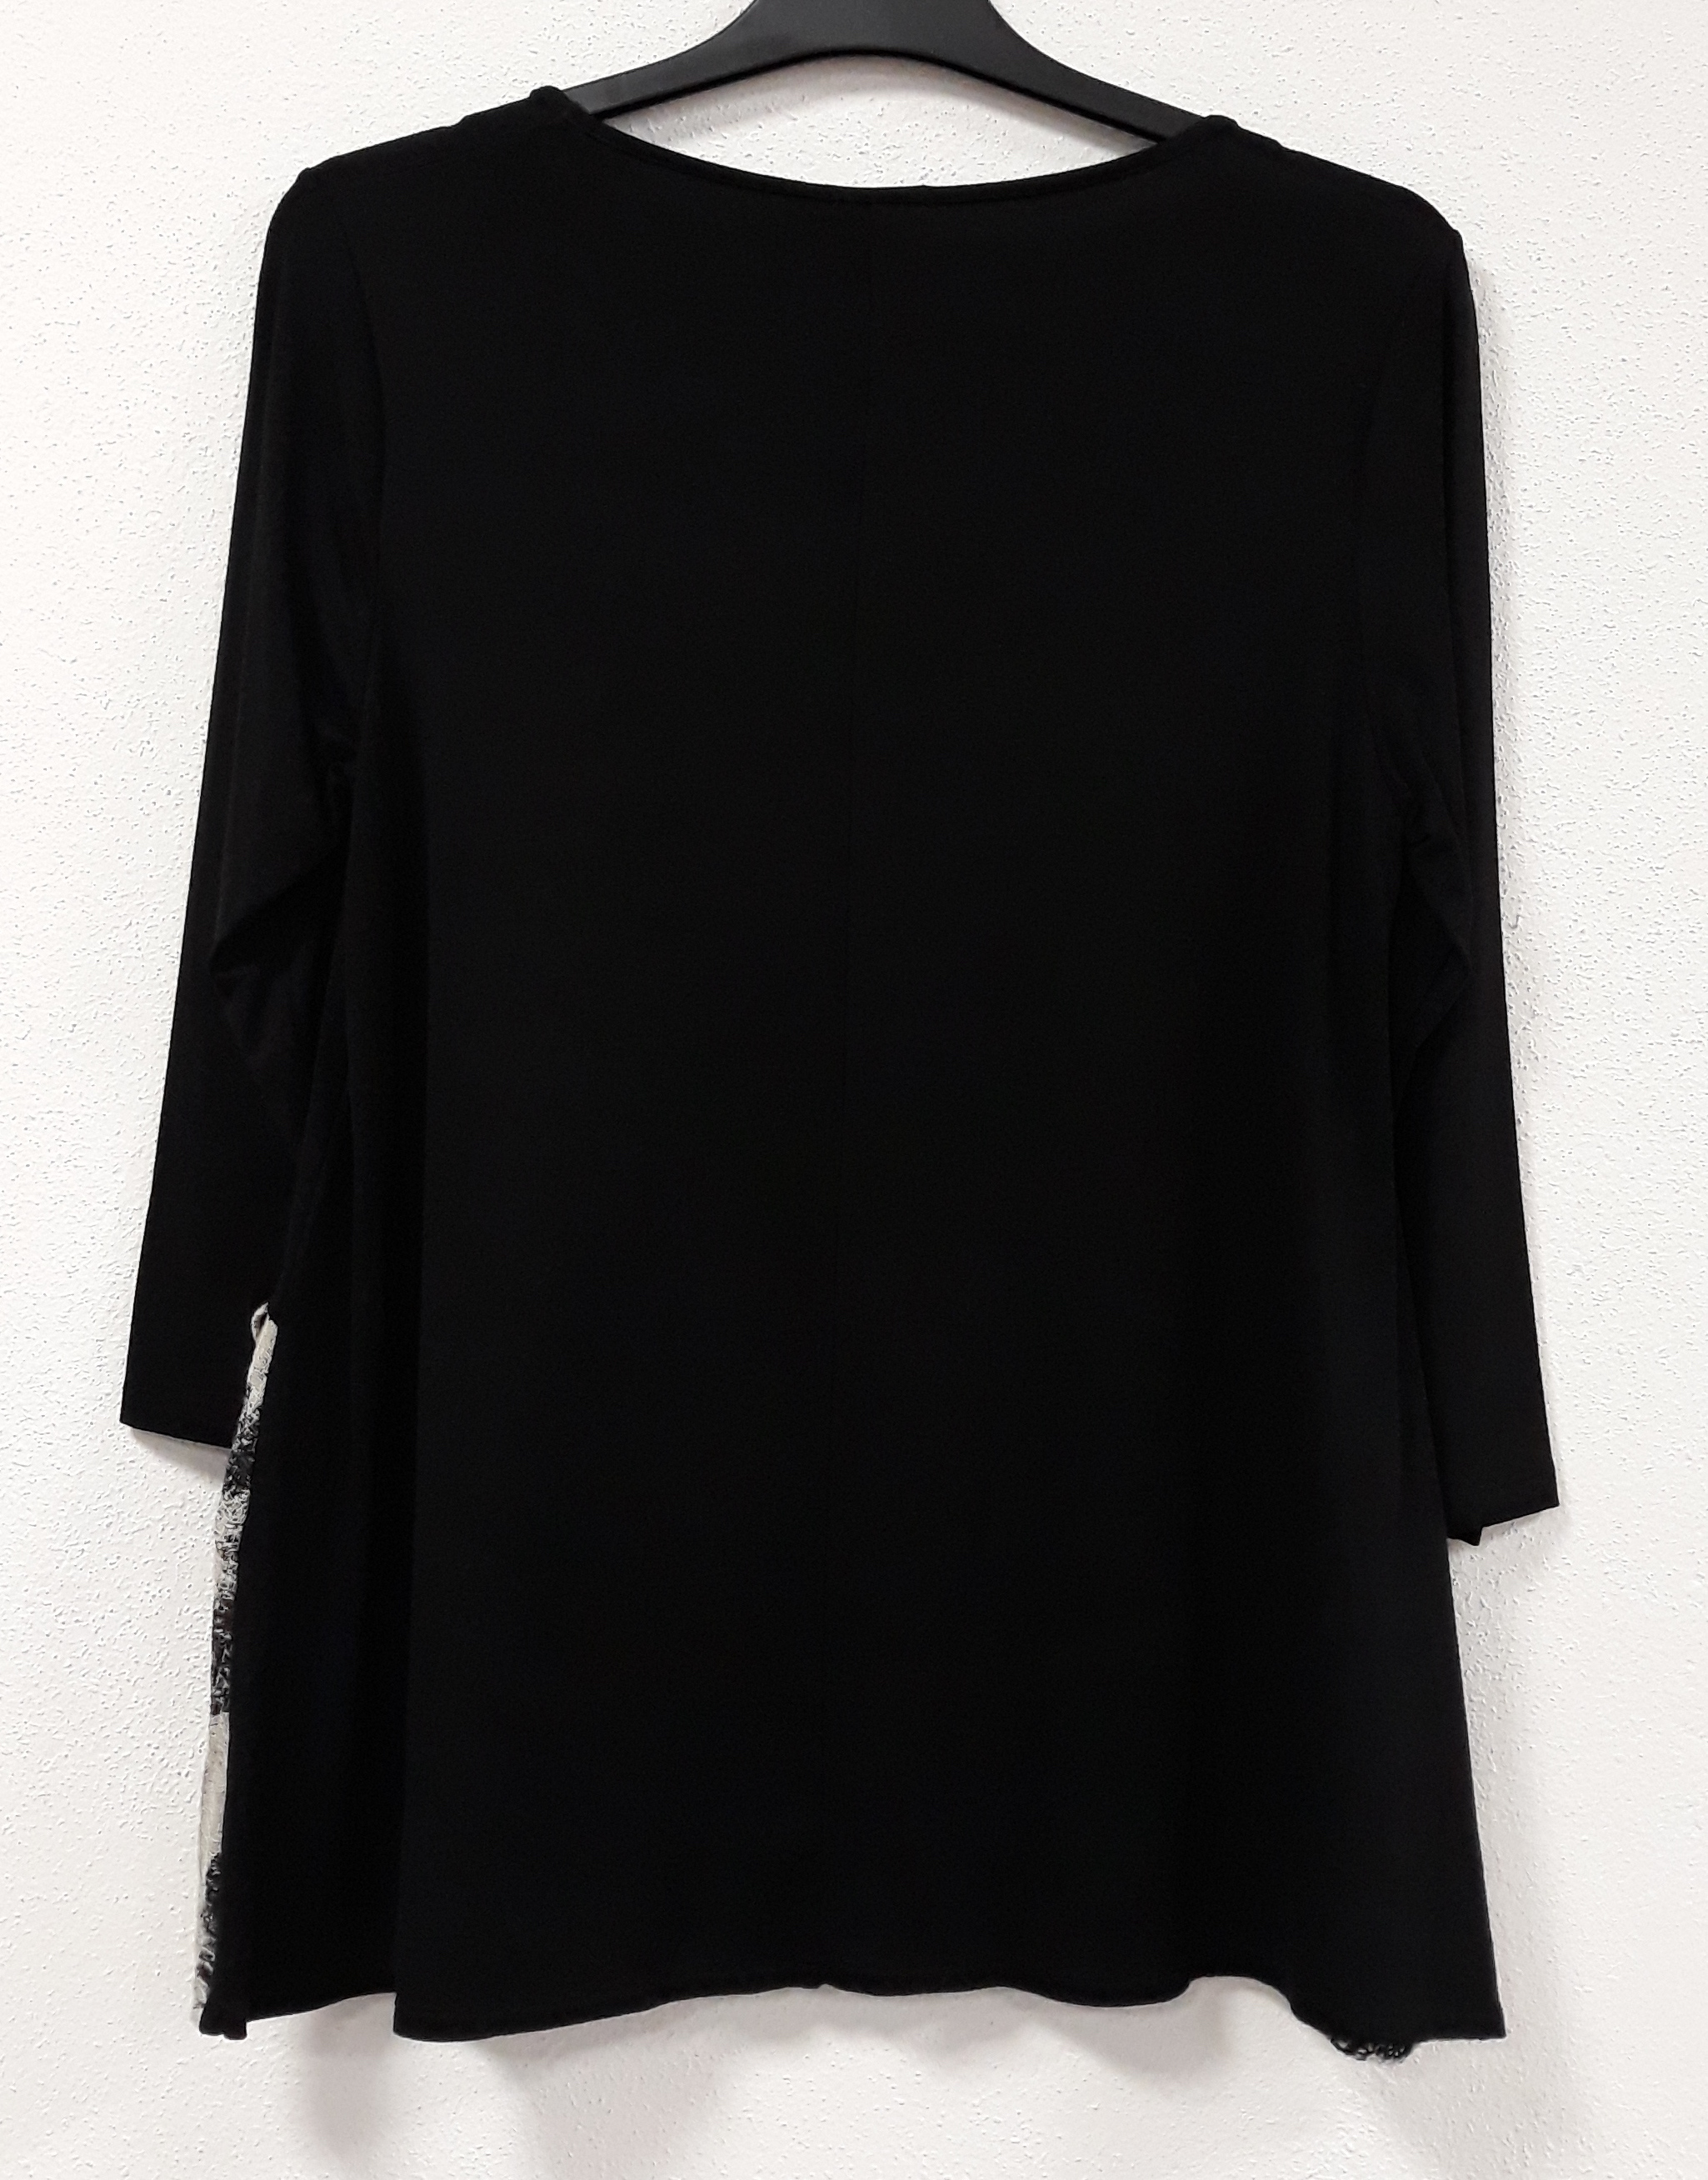 G!oze France: Bubble Rhapsody Asymmetrical Tunic (3 Left!)